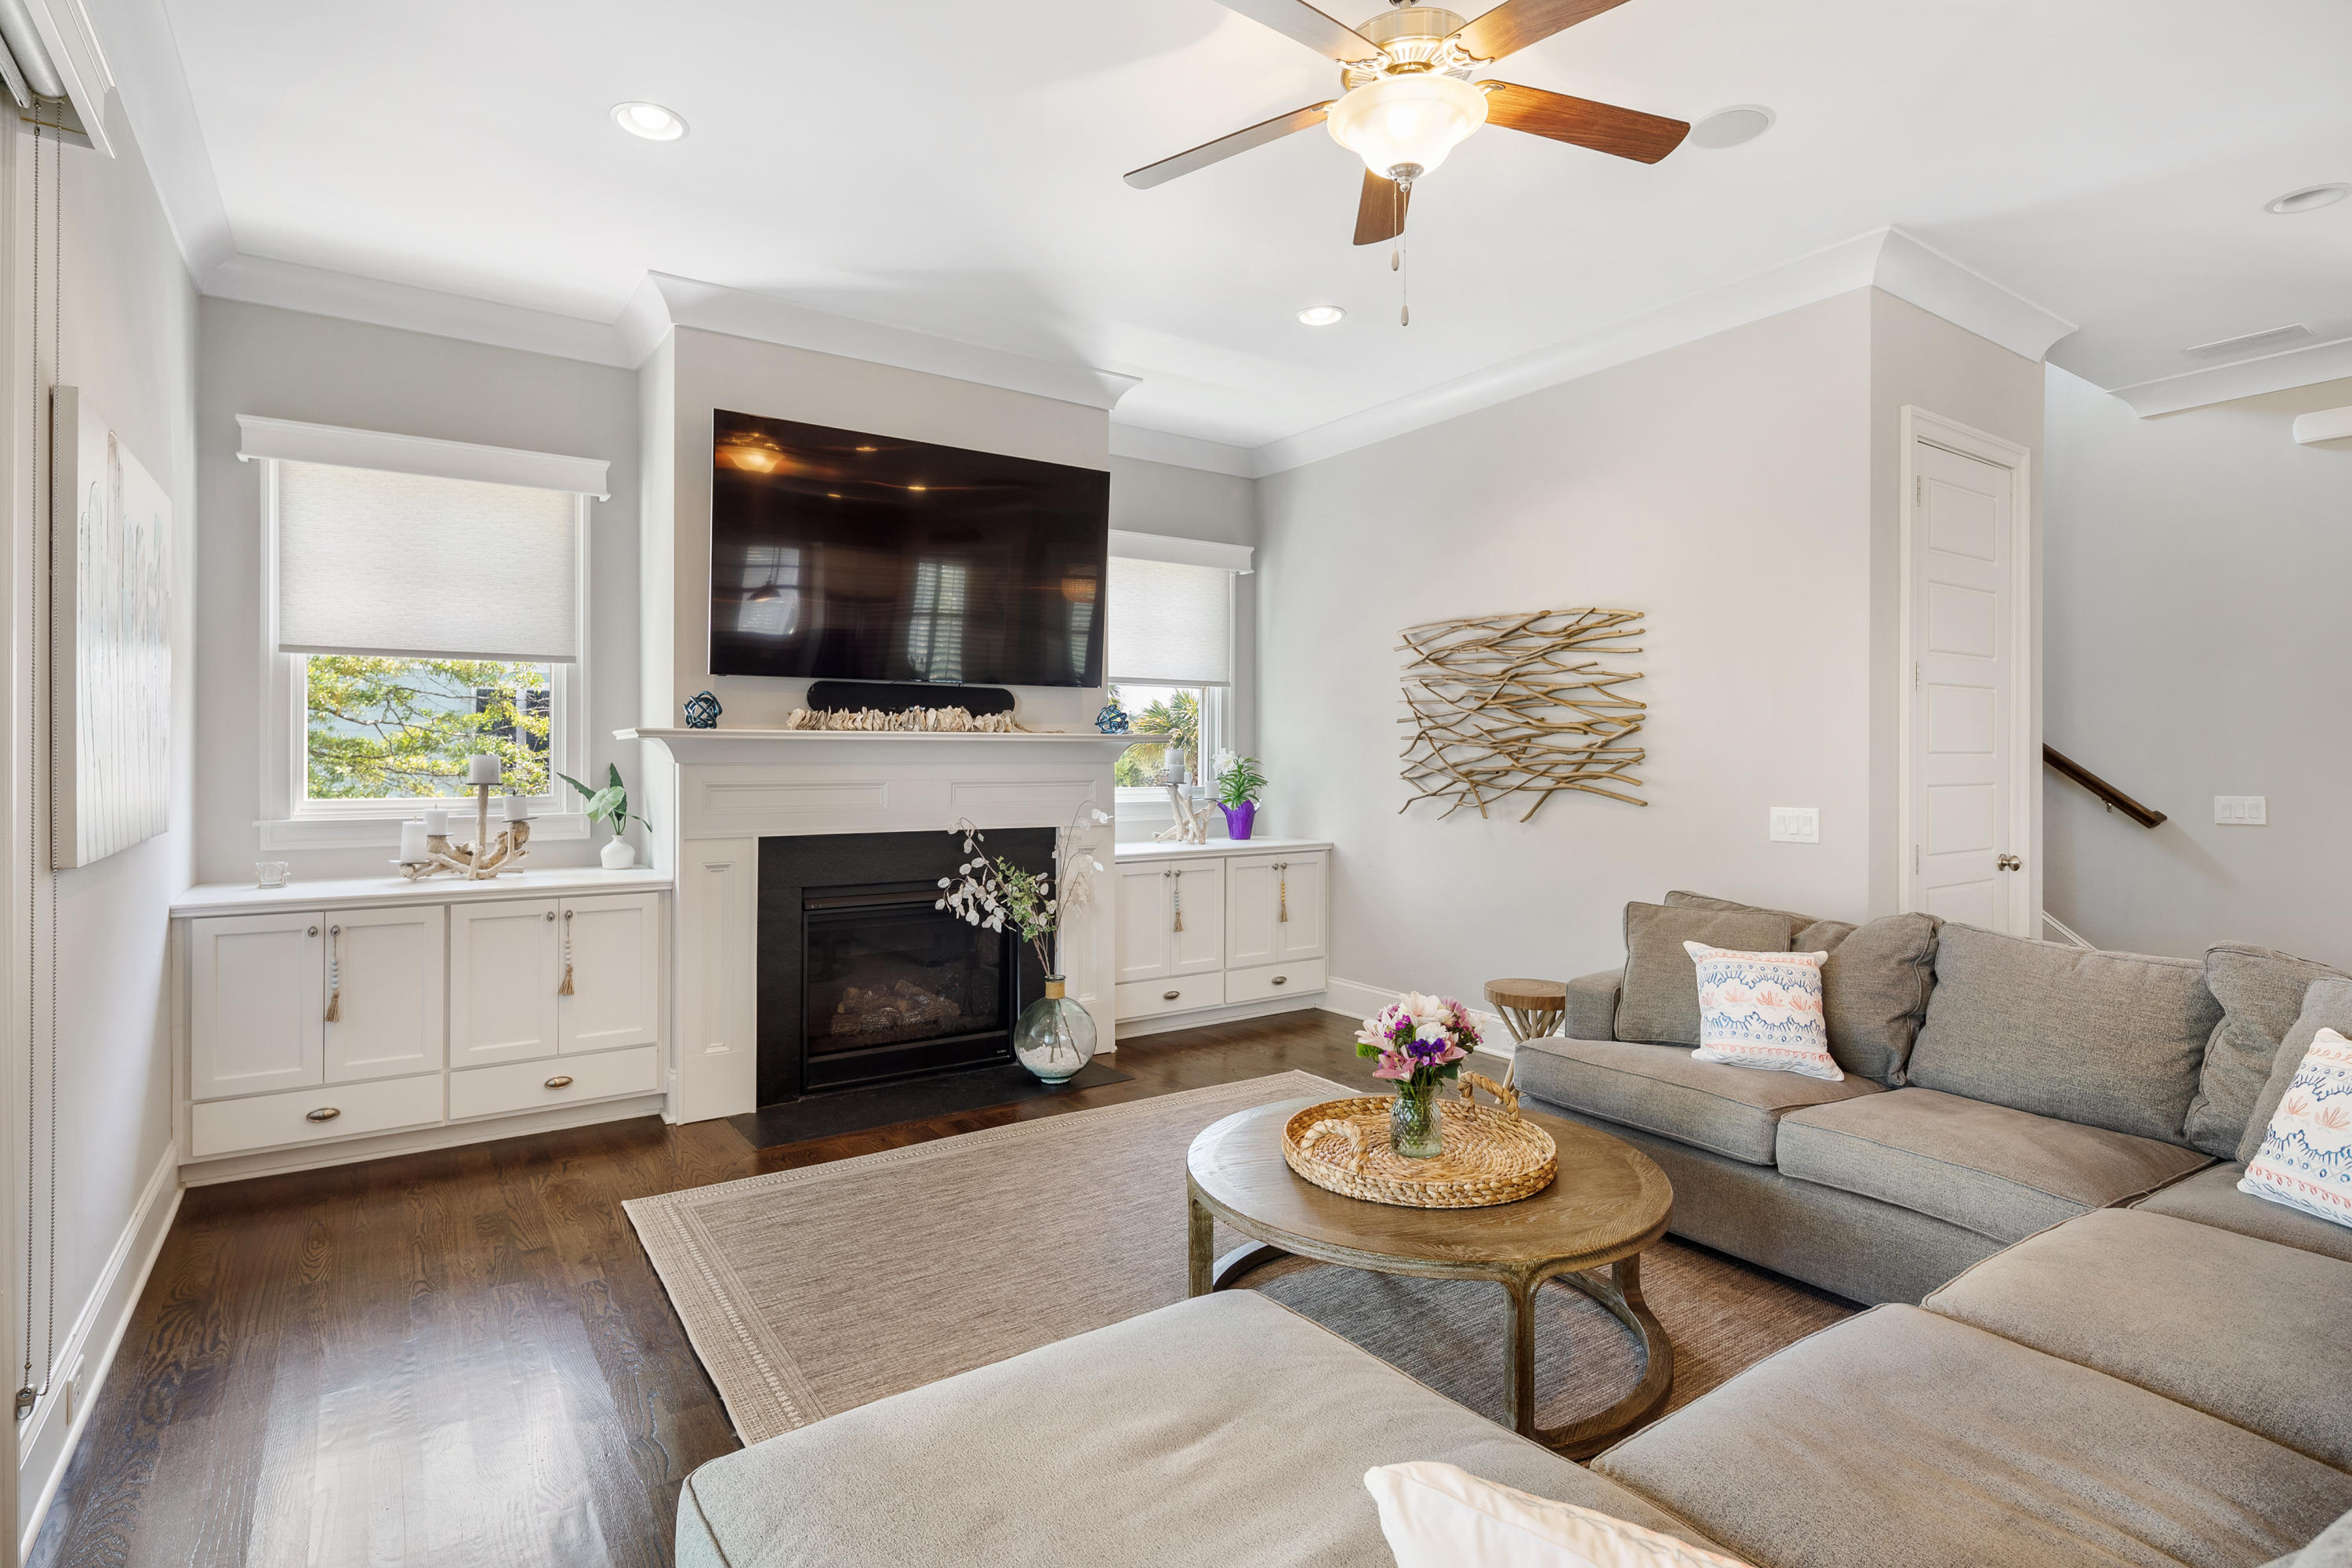 Rivertowne Country Club Homes For Sale - 1633 Rivertowne Country Club, Mount Pleasant, SC - 23